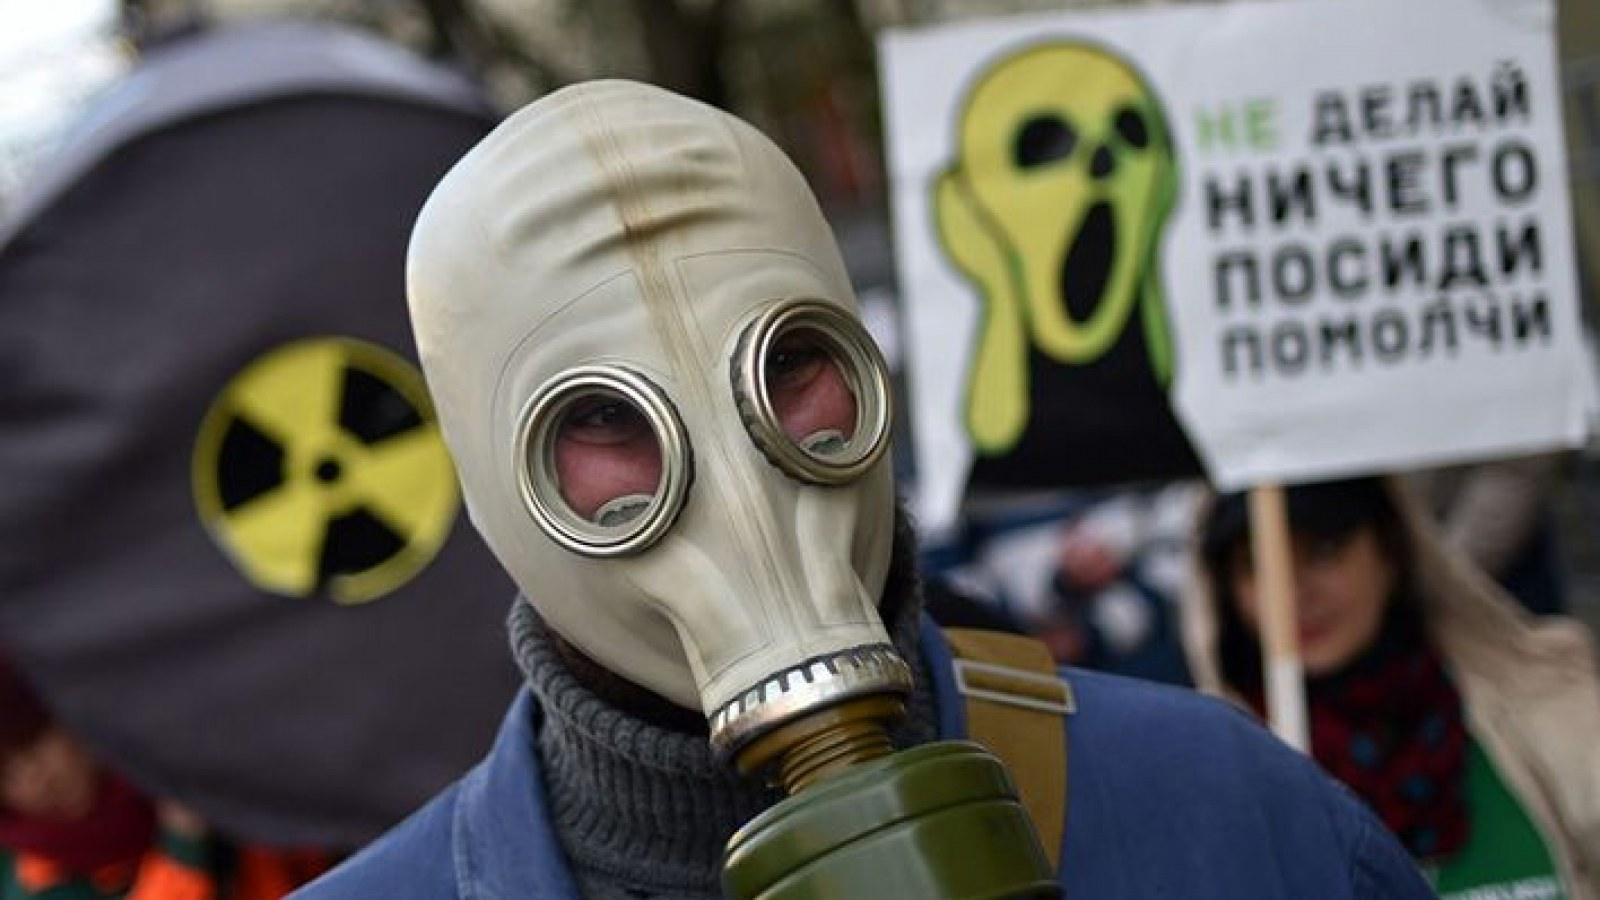 Is Chernobyl Safe? Can You Live There Now? Experts Explain